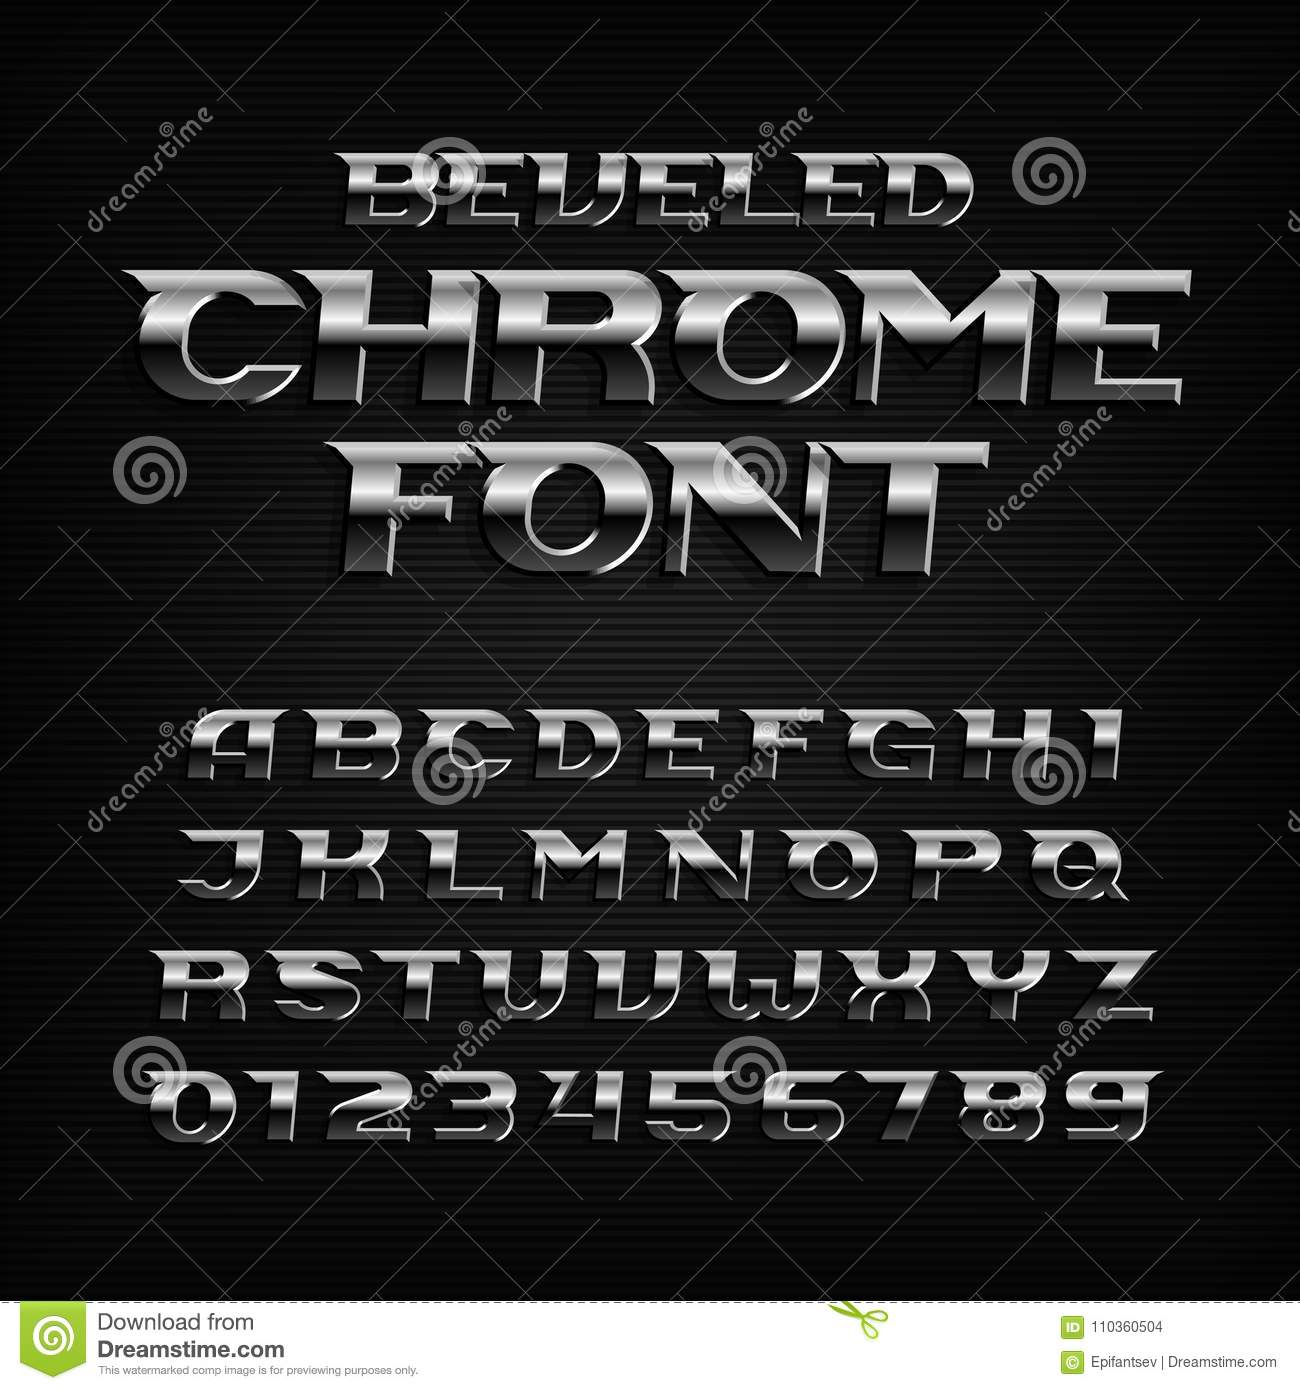 Chrome effect alphabet font. Steel oblique letters and numbers.